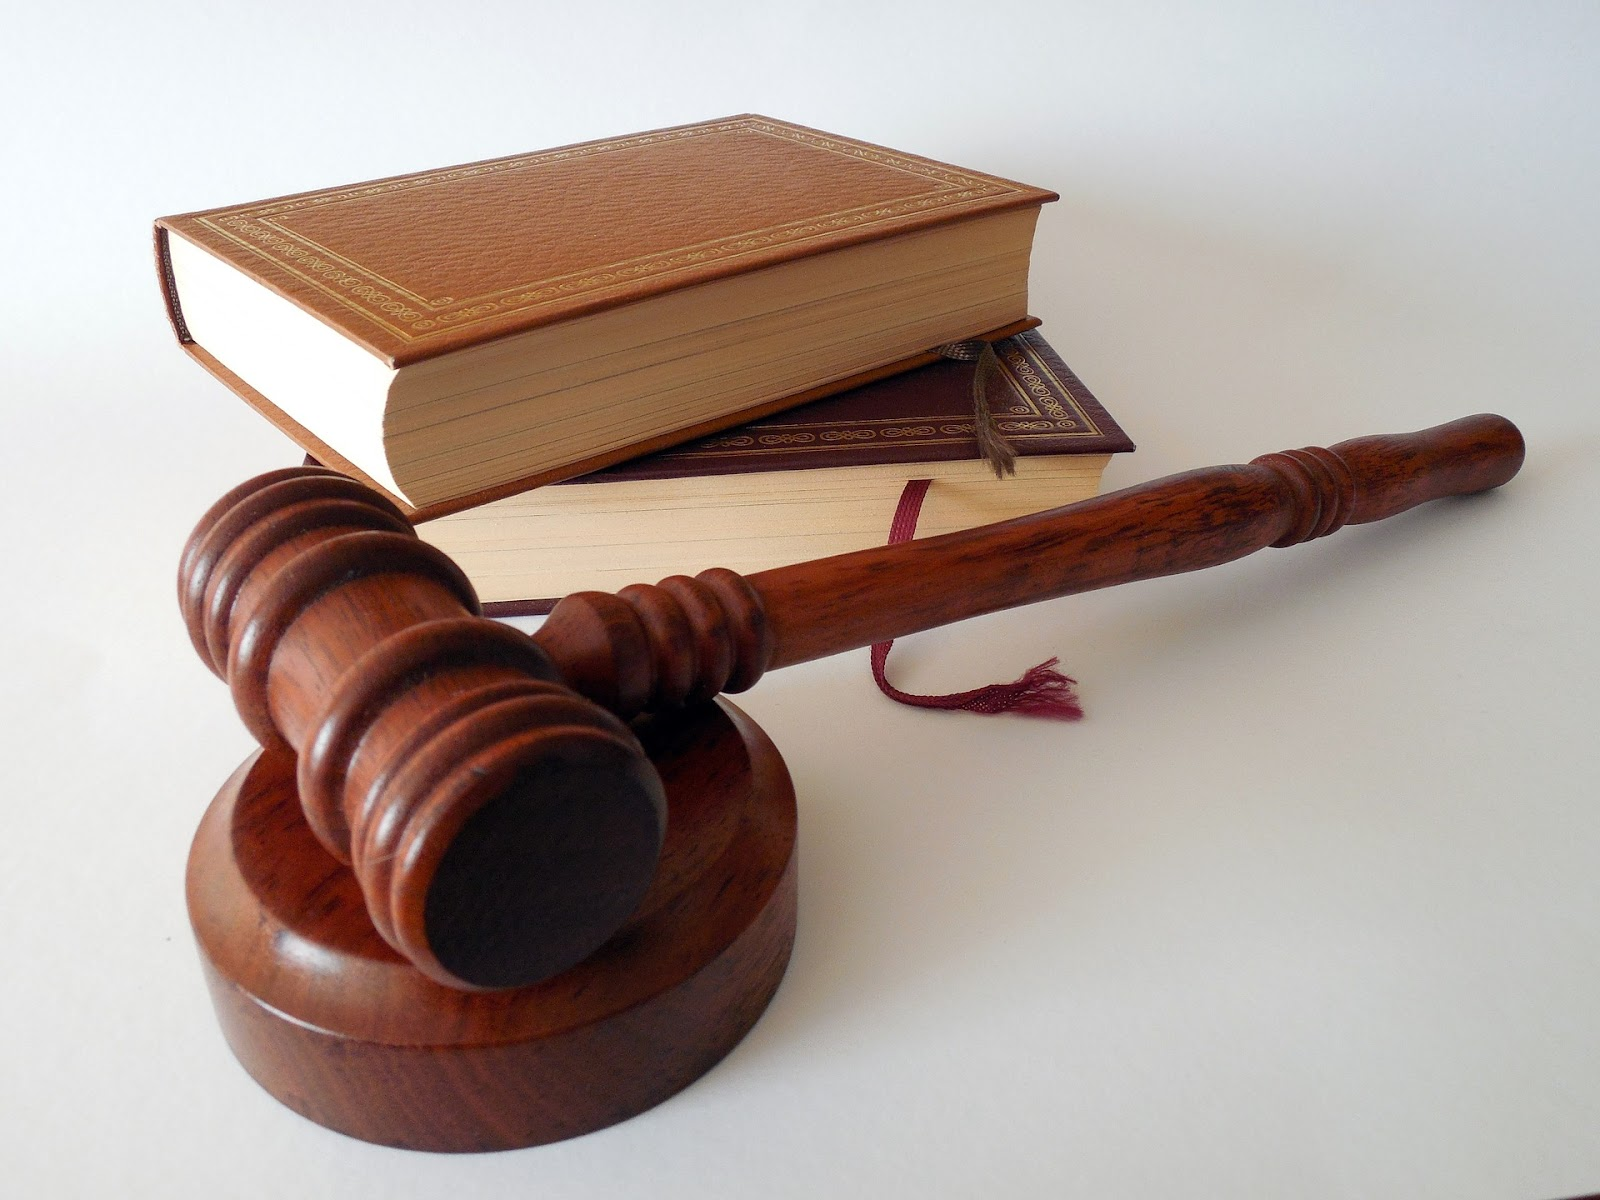 Academic integrity: Gavel and a book